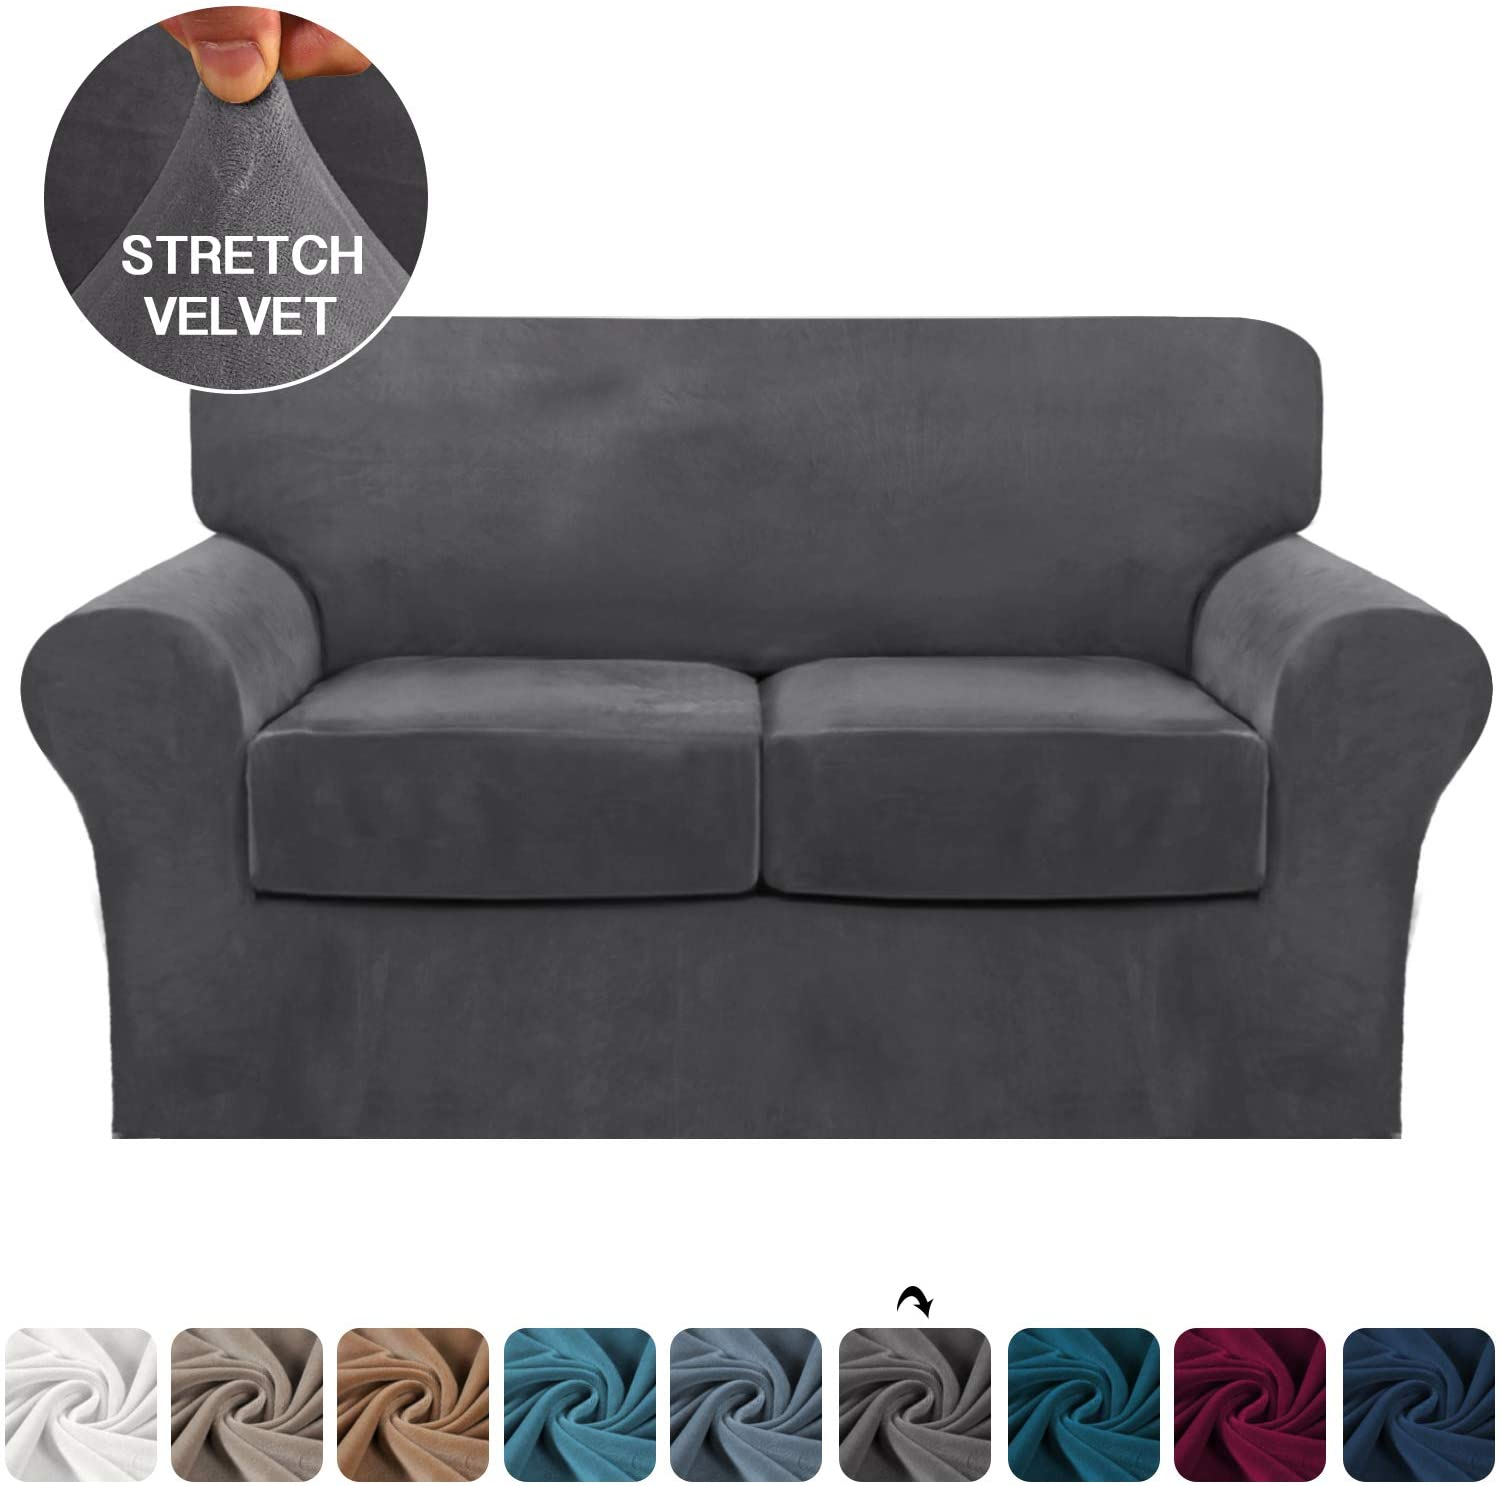 FantasDecor 3 Piece Sofa Cover Stretch Luxury Thick Velvet Loveseat Slipcover Cover with 2 Separate Seat Cushion Covers   Couch Cover Loveseat for Living Room, Secure with Straps (Loveseat,Gray)